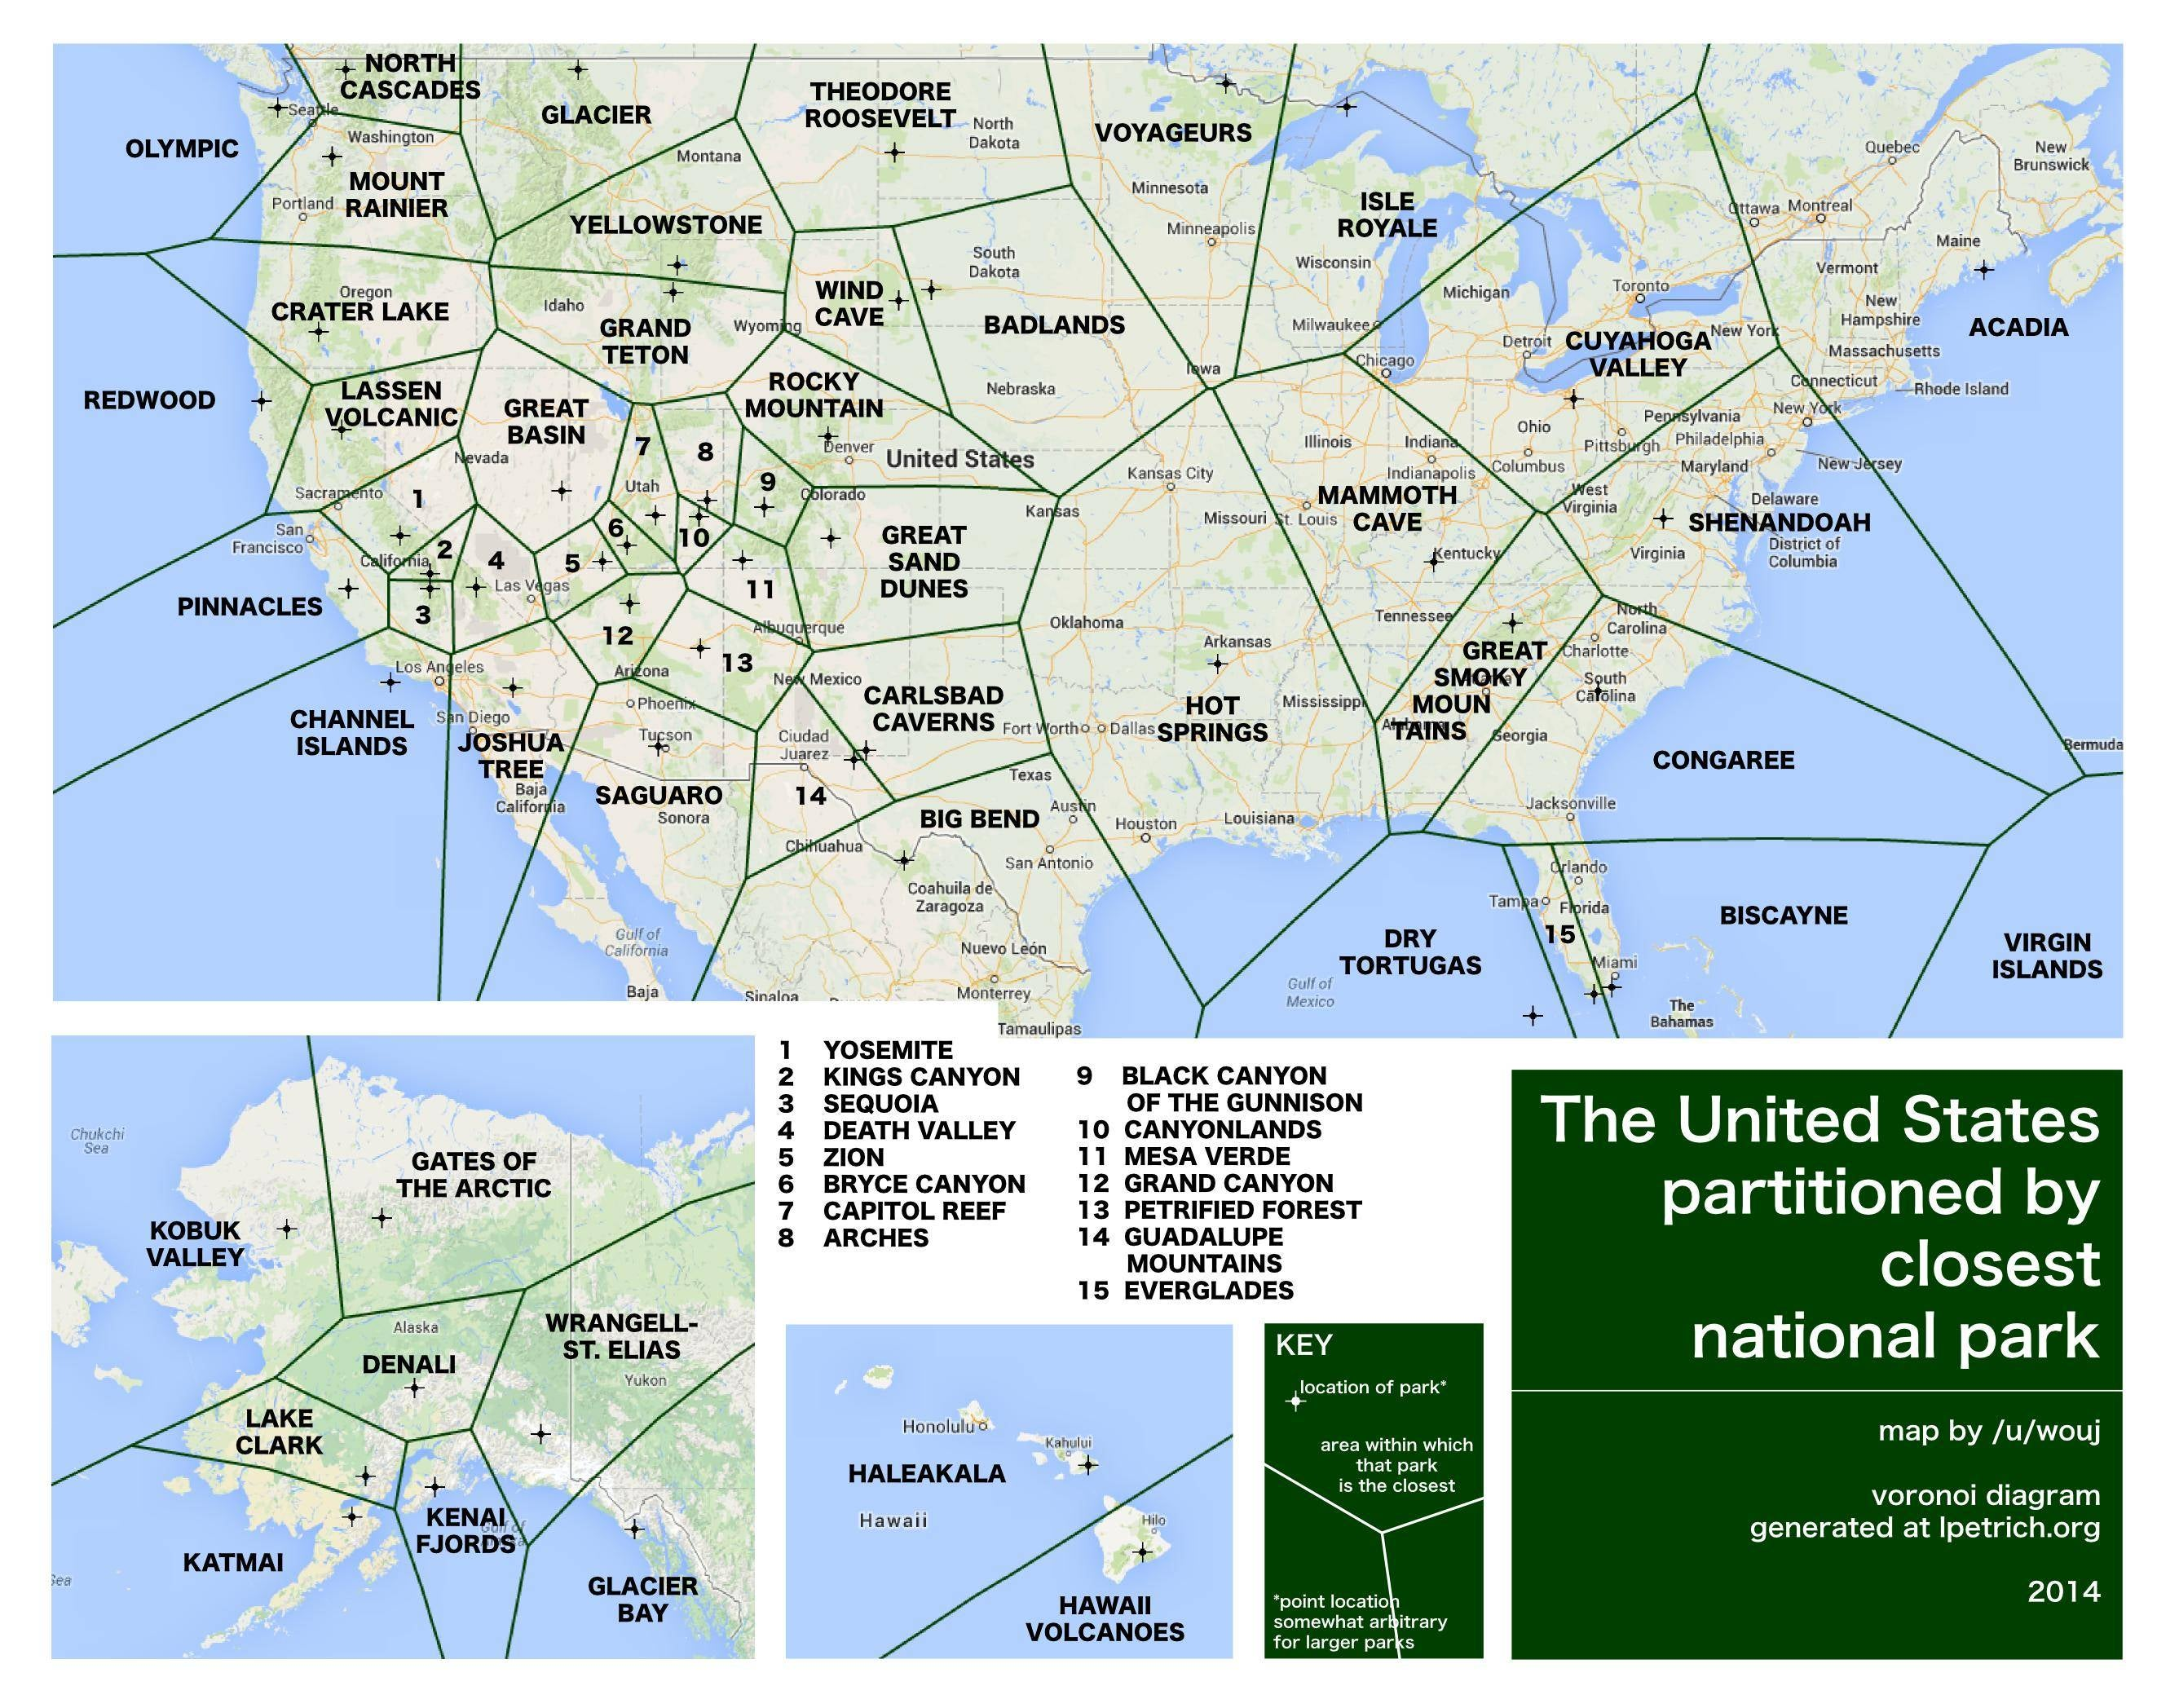 the sierra club shared this handy map of the us partitioned by closest national park